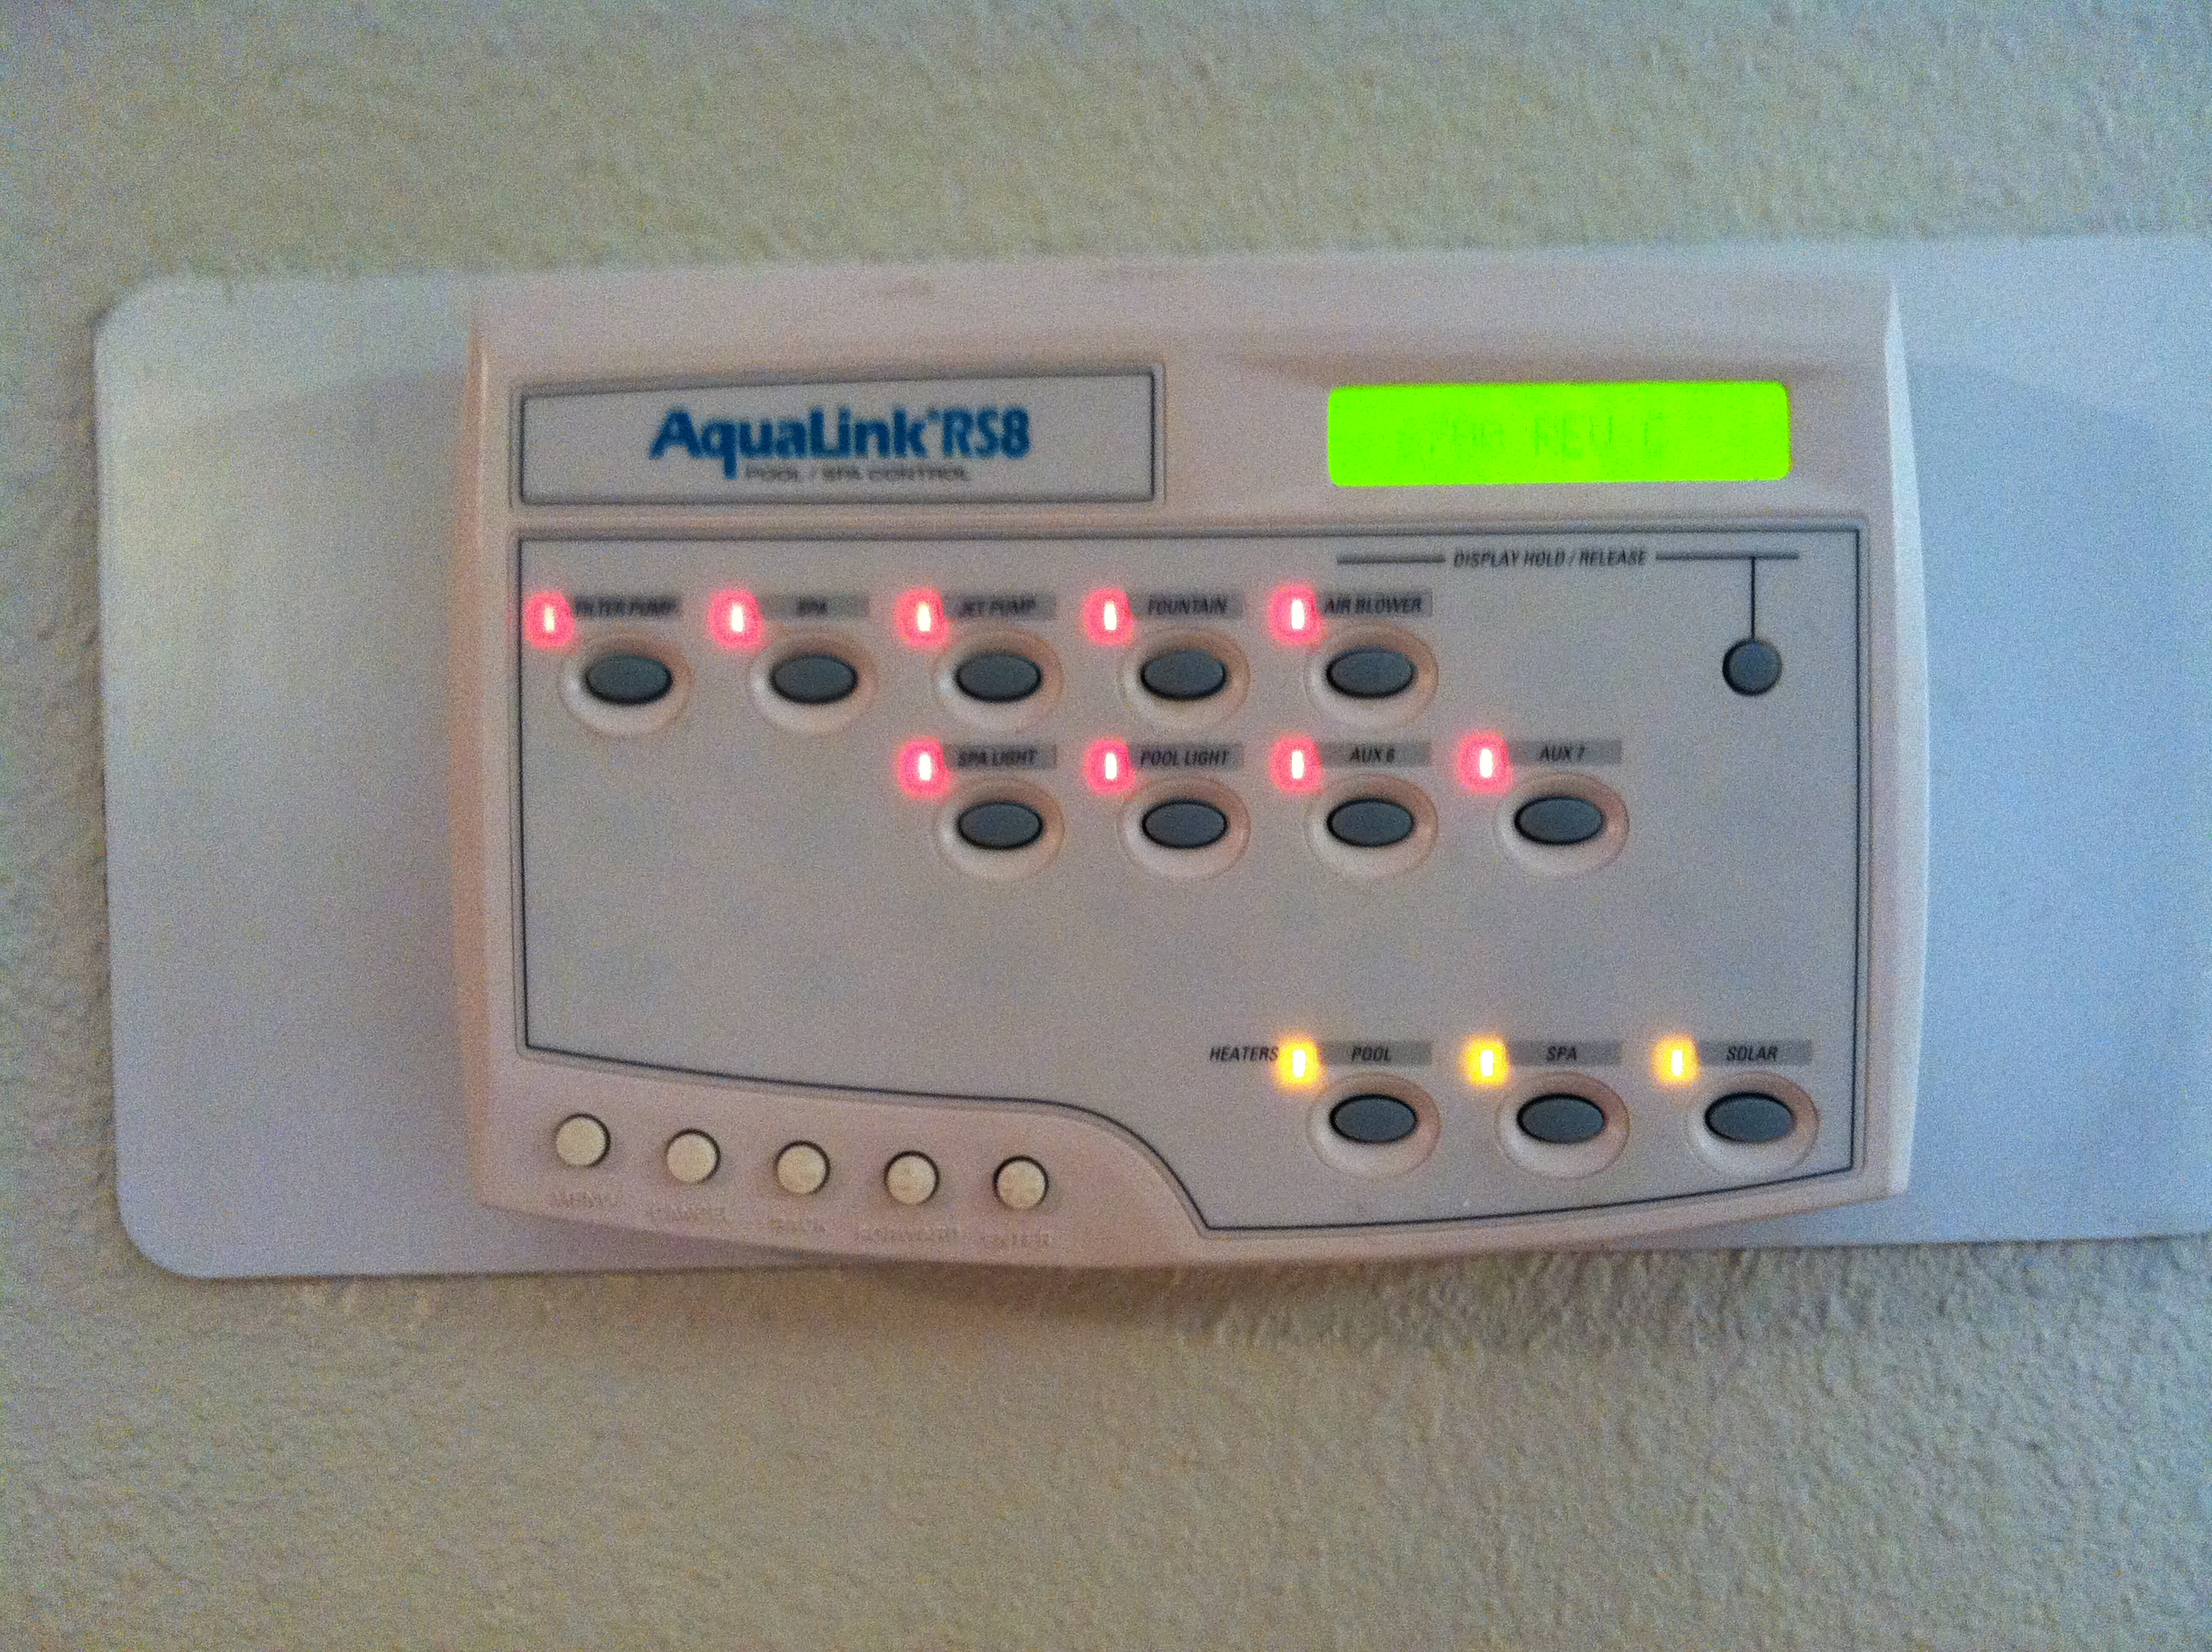 Aqualink Rs Pool Control Center Not Communicating With Main